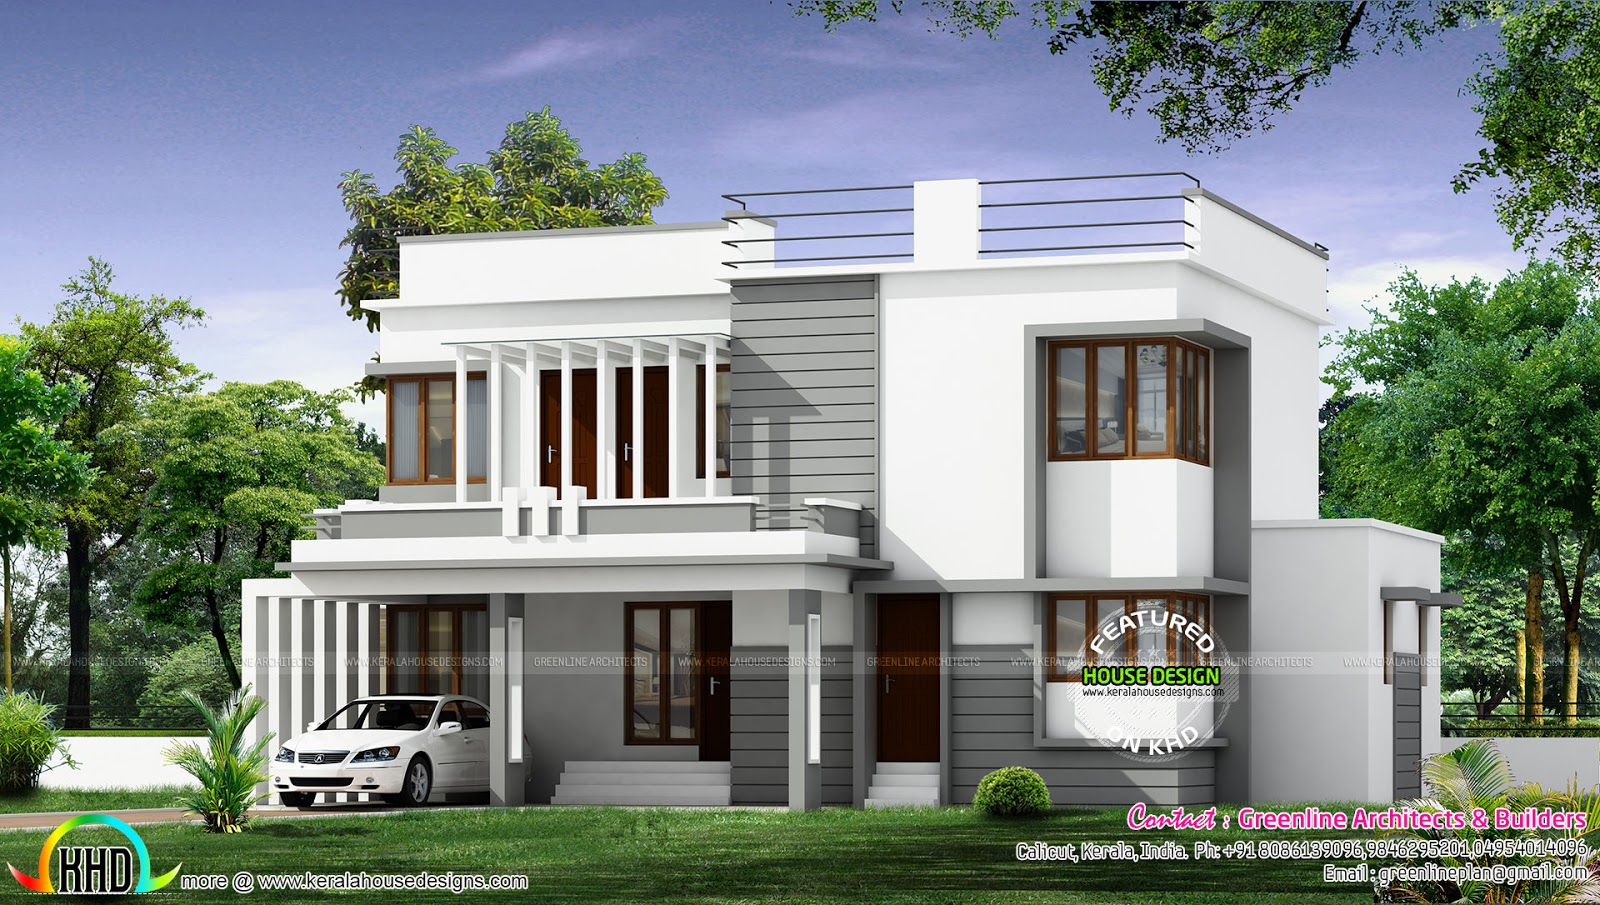 New modern house architecture kerala home design and for New house design